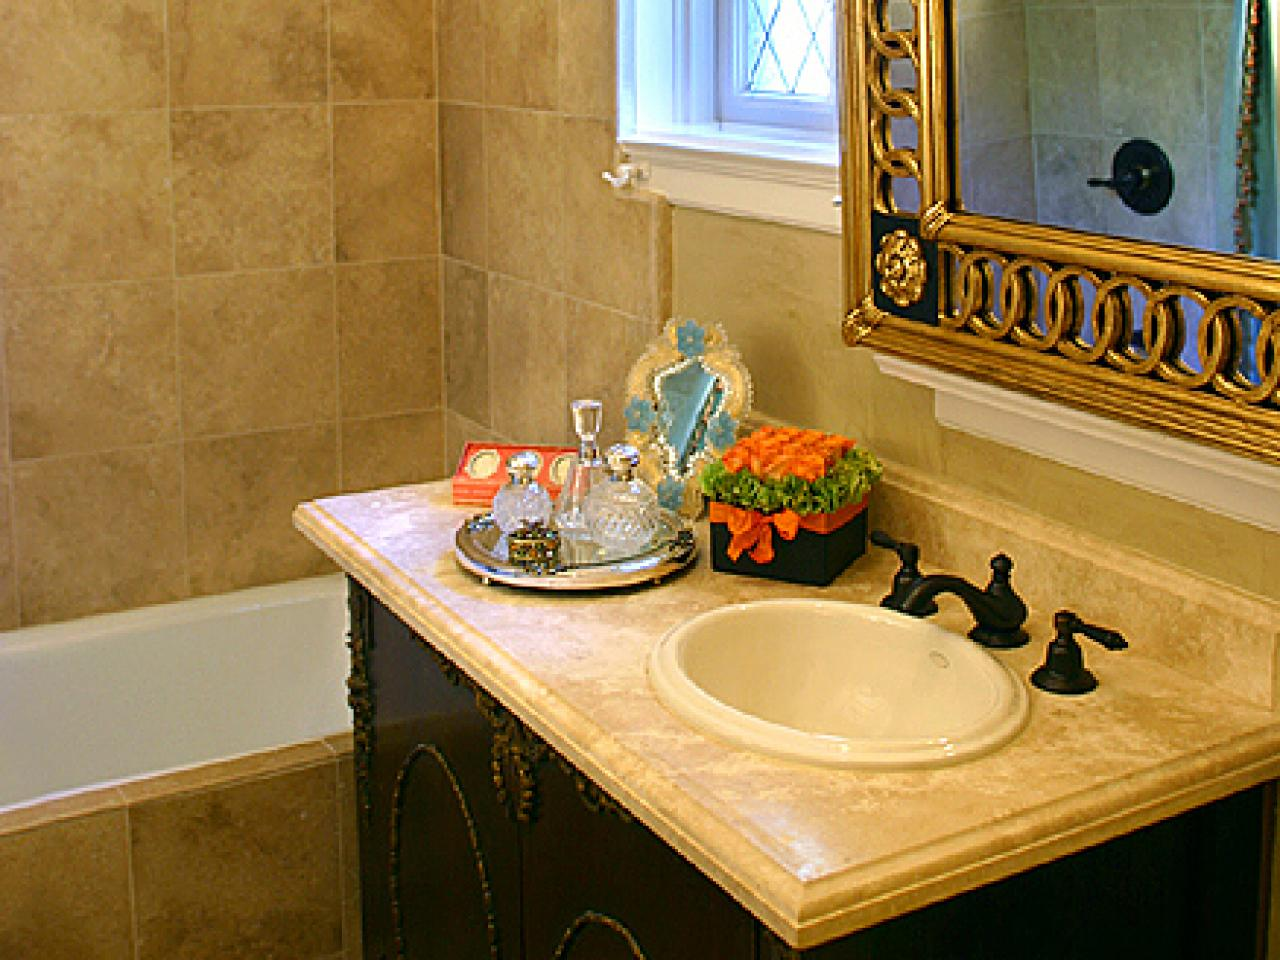 Remodel Bathroom Return On Investment which home improvements pay off? | hgtv